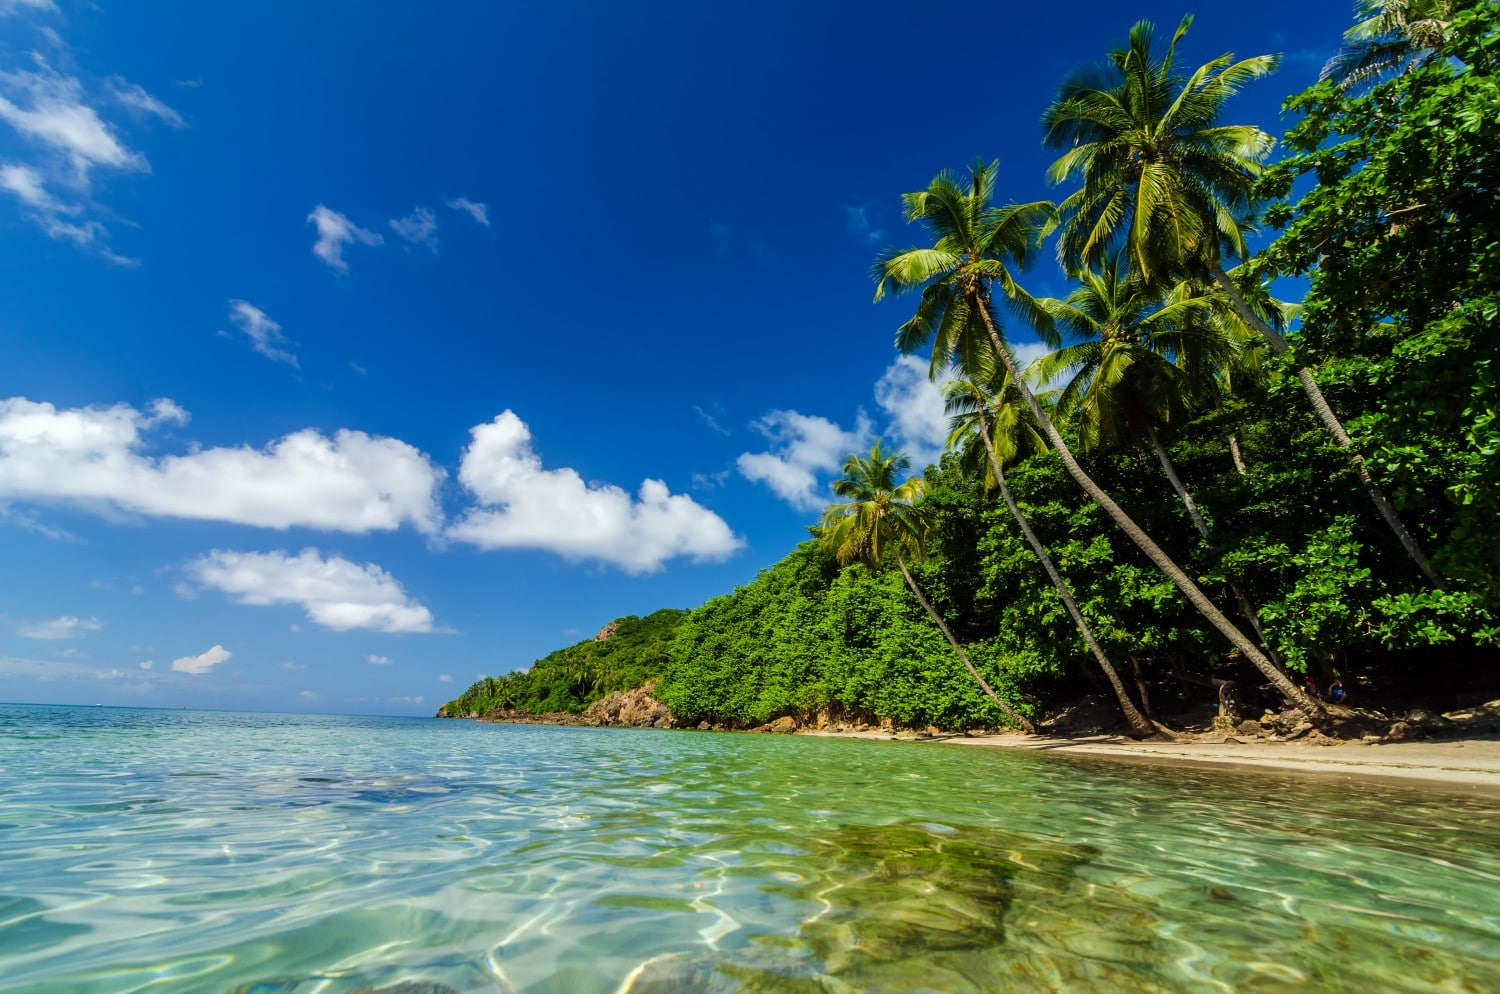 Providencia has some of the best beaches in Colombia